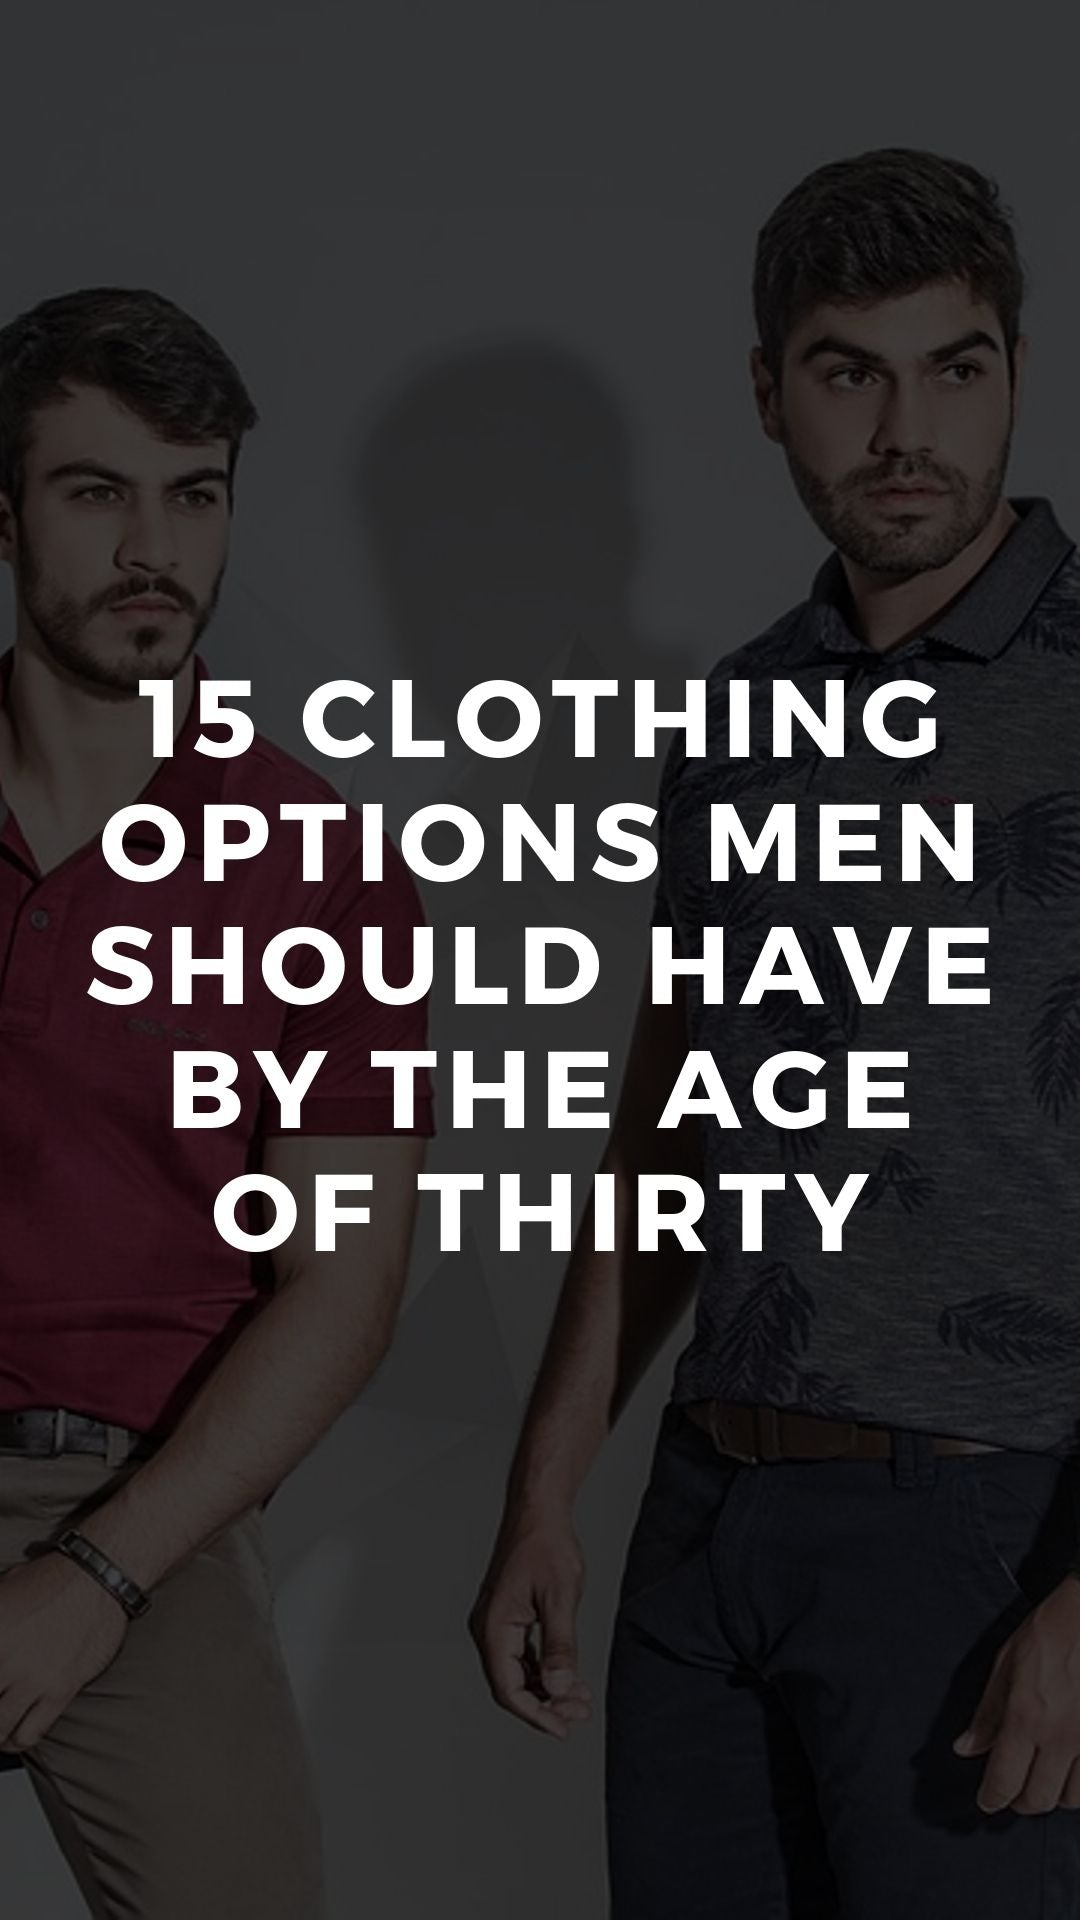 15 Clothing Options Men Should Have By The Age Of Thirty